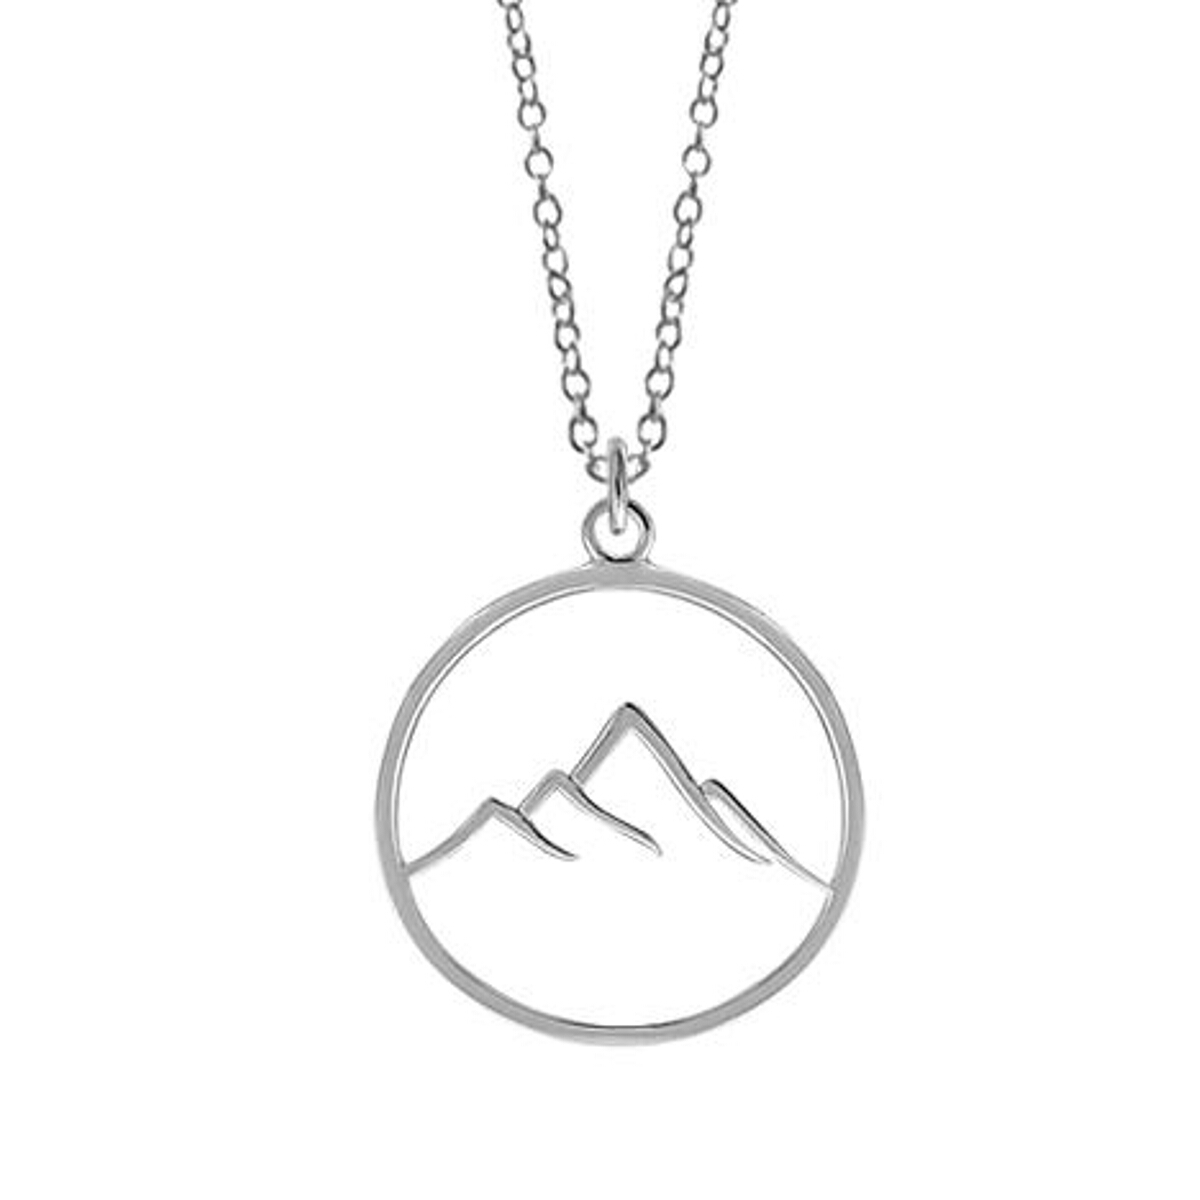 image Boma-Mountain-18In-Necklace-Main-Image